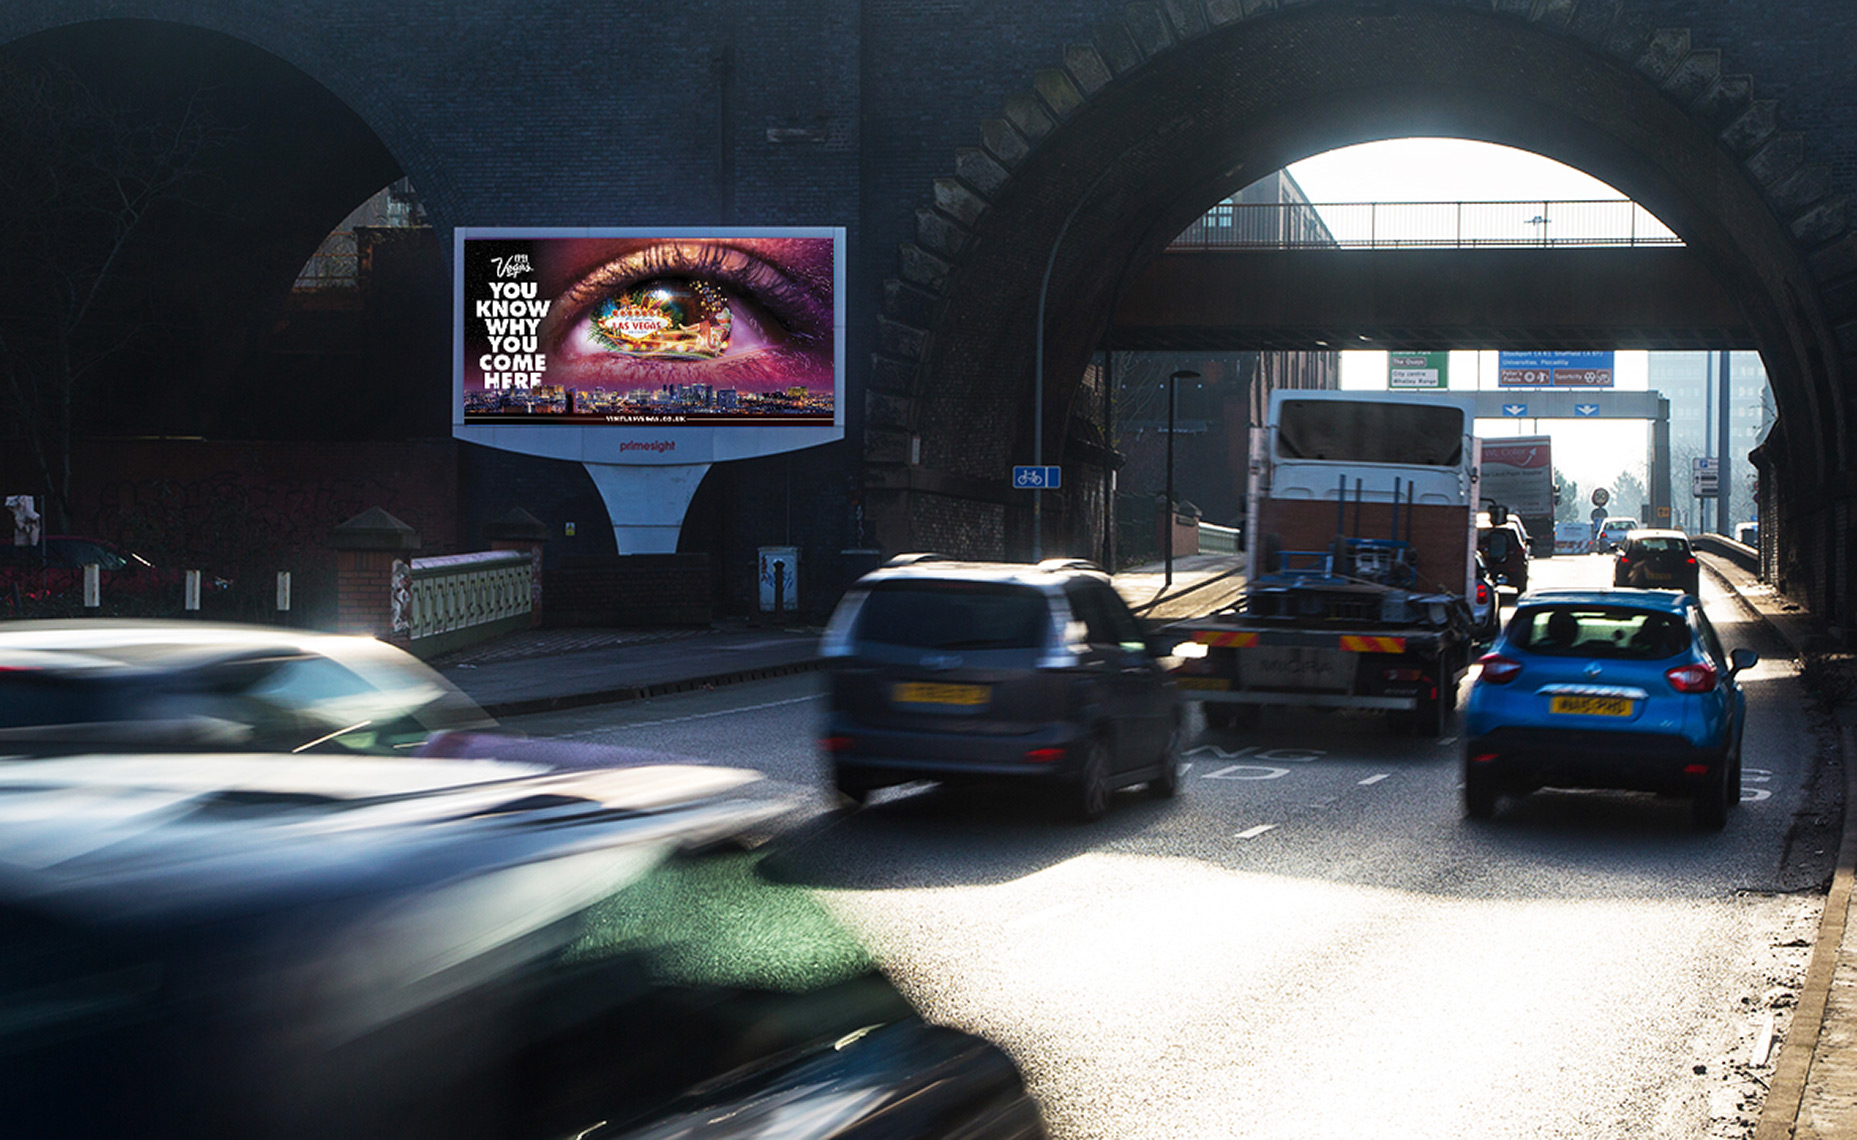 Primesight-Glasgow-48-sheets